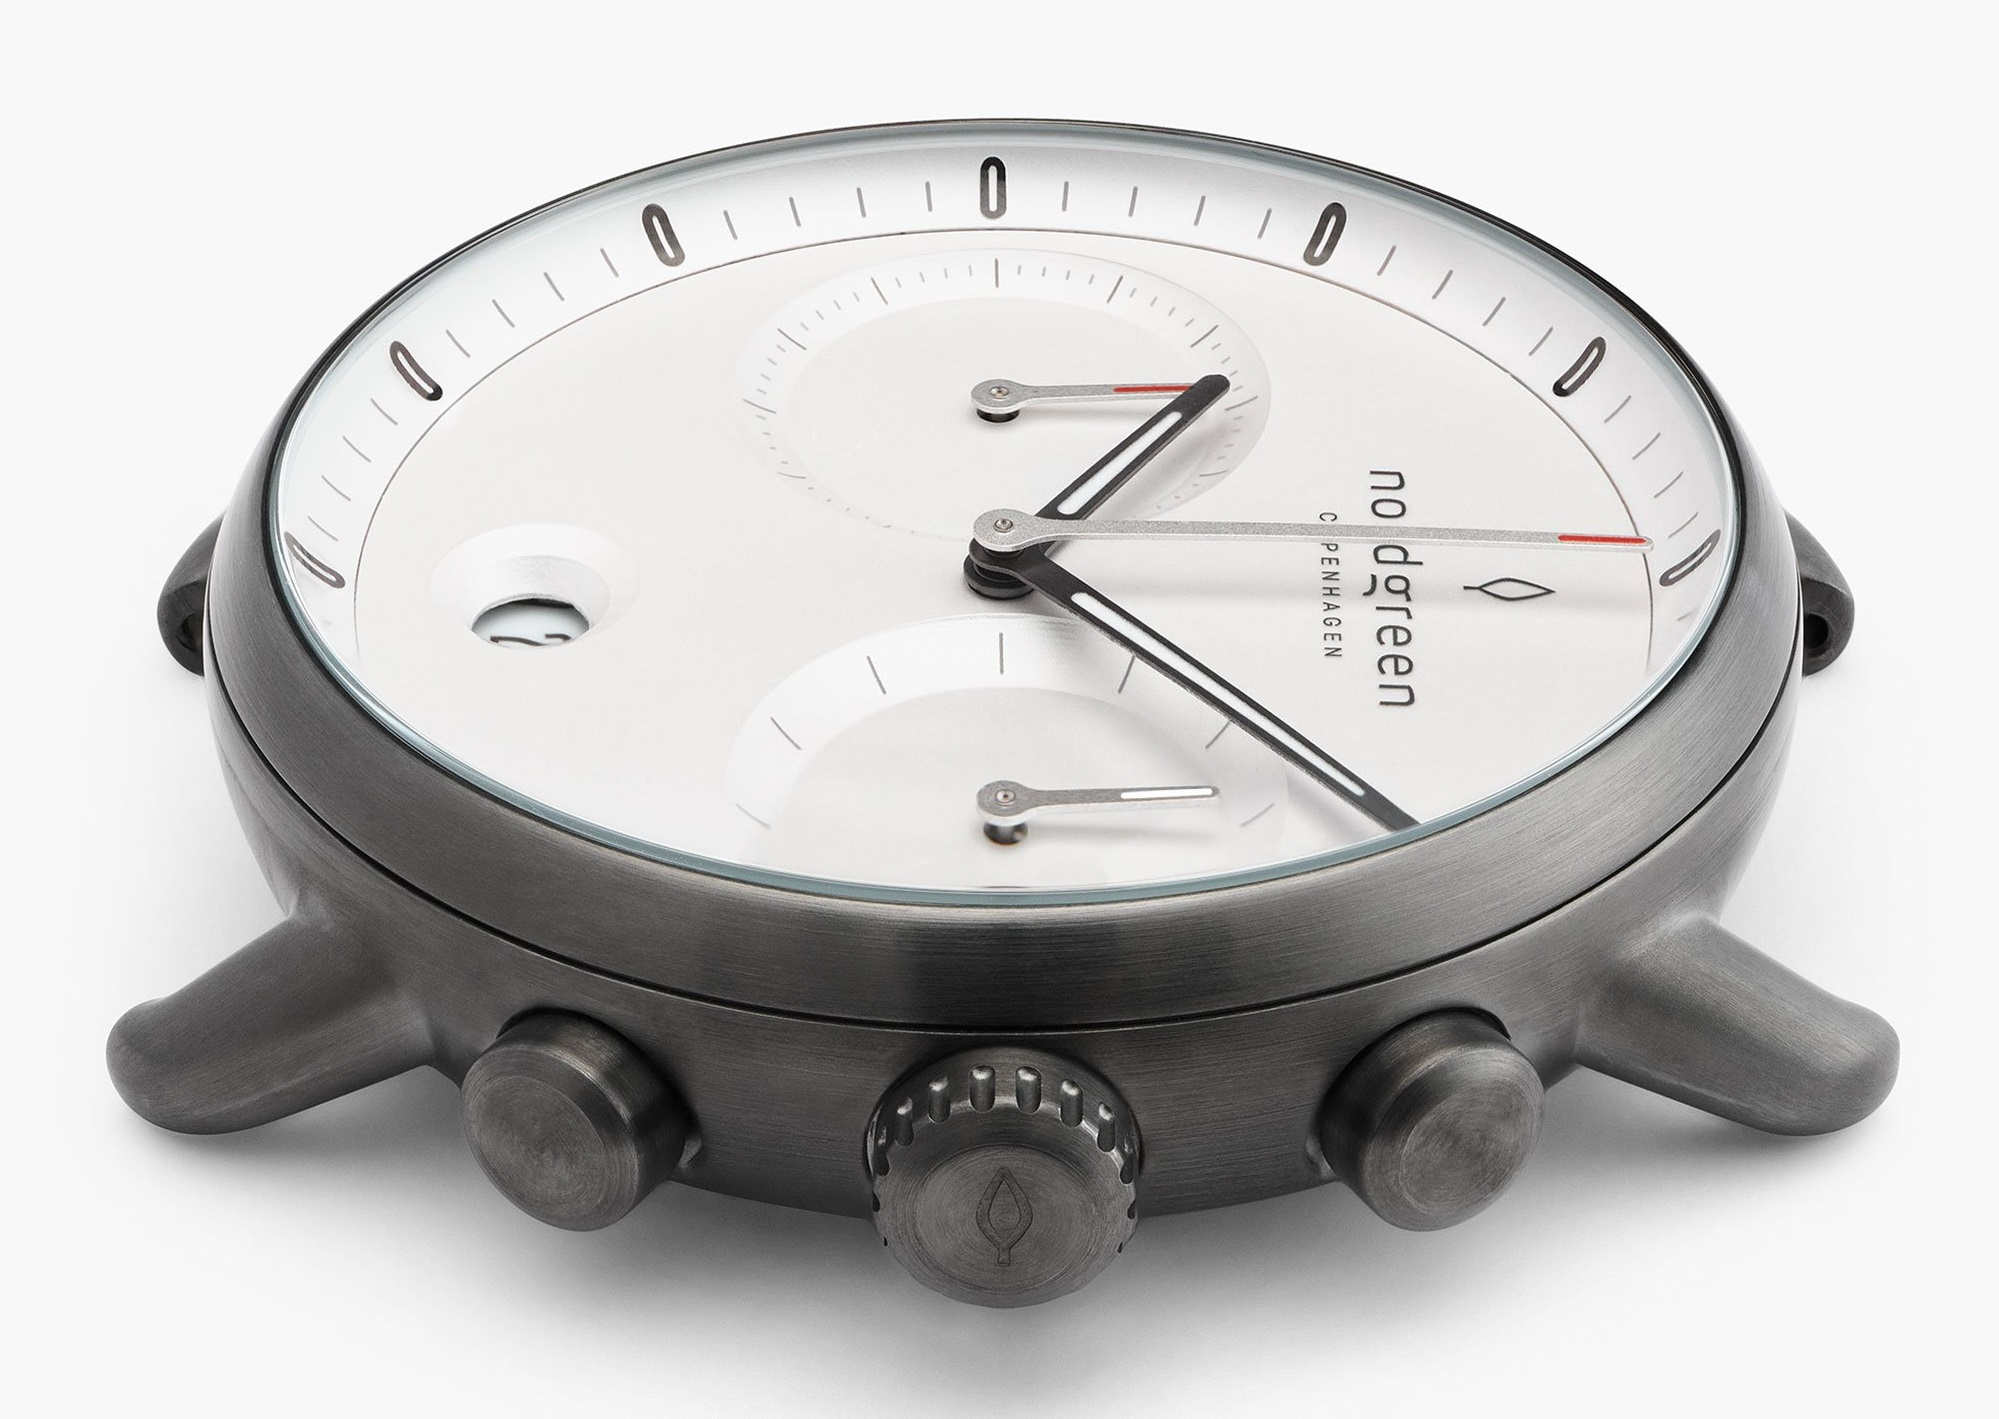 Pioneer Chronograph Watch from Nordgreen side view of stainless steel case